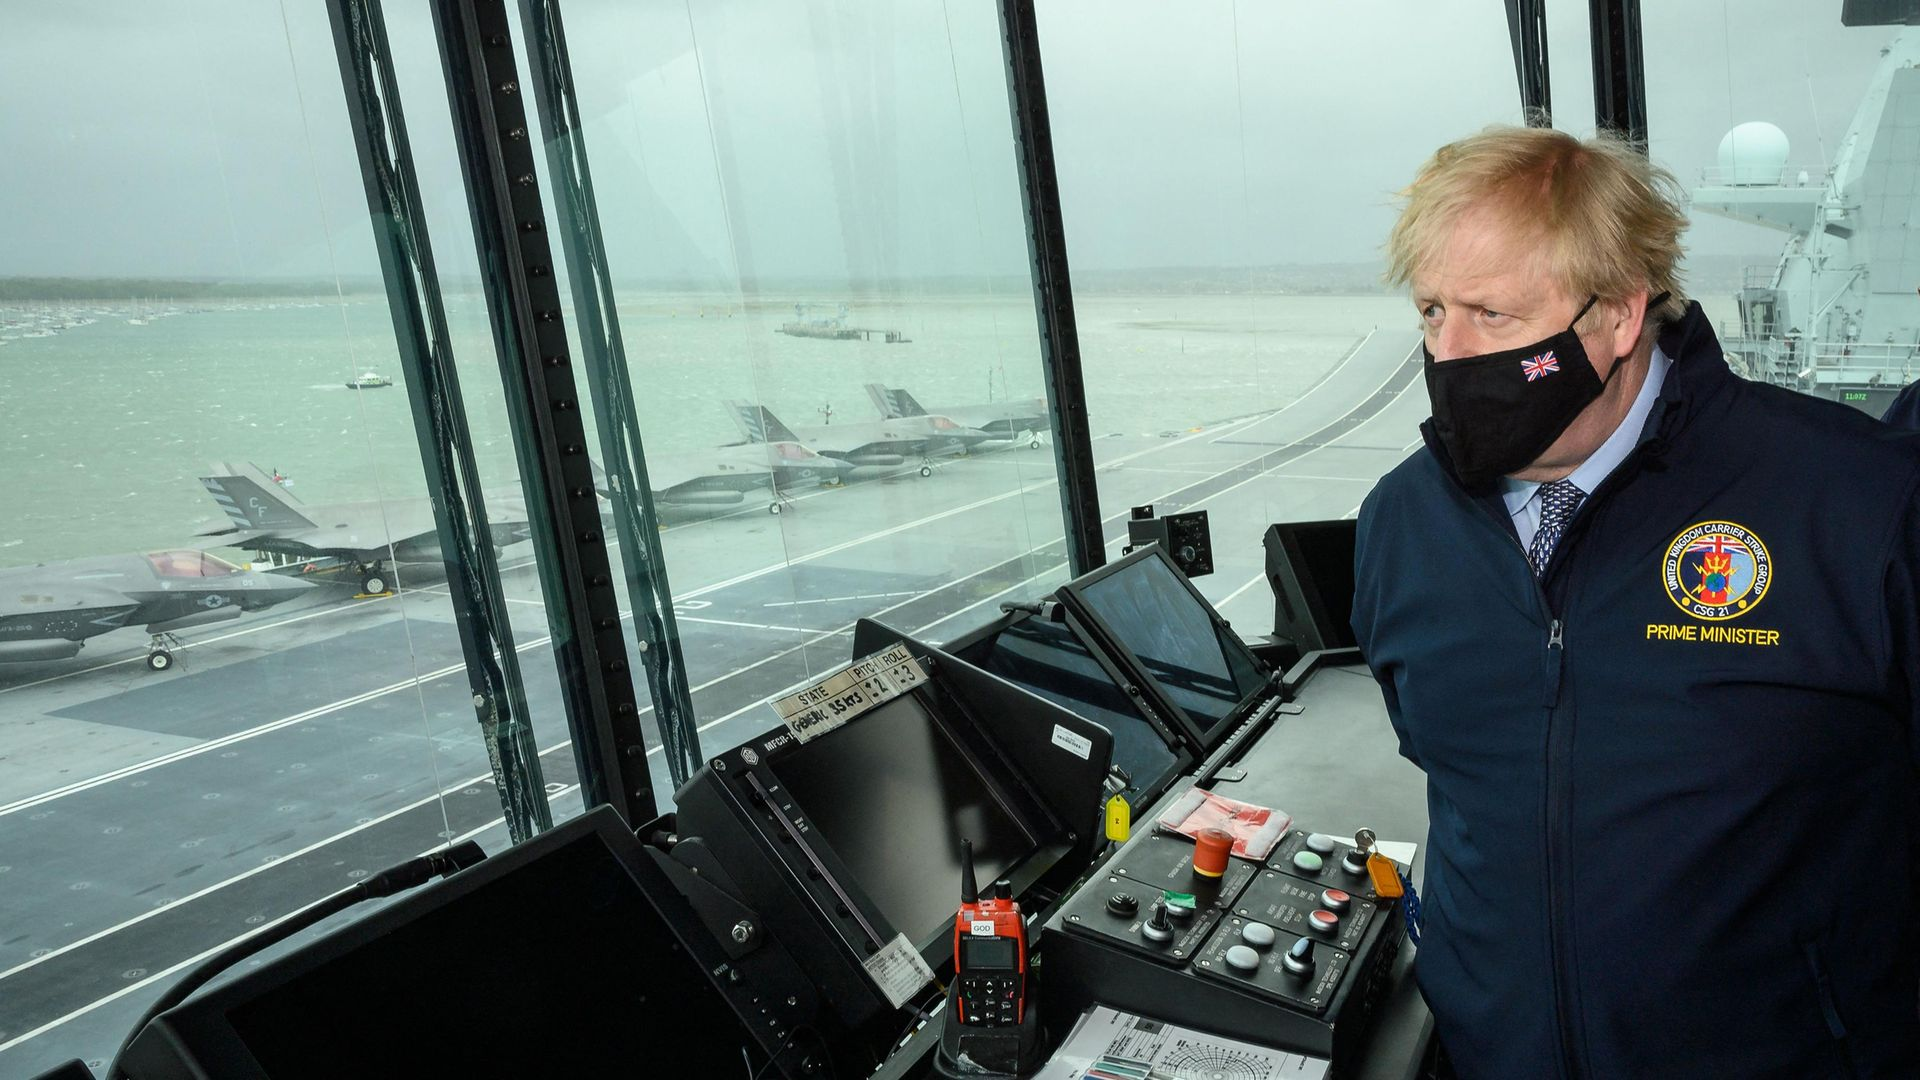 Boris Johnson  during a visit to HMS Queen Elizabeth aircraft carrier in Portsmouth,  May 21, 2021 - Credit: Photo by LEON NEAL/POOL/AFP via Getty Images